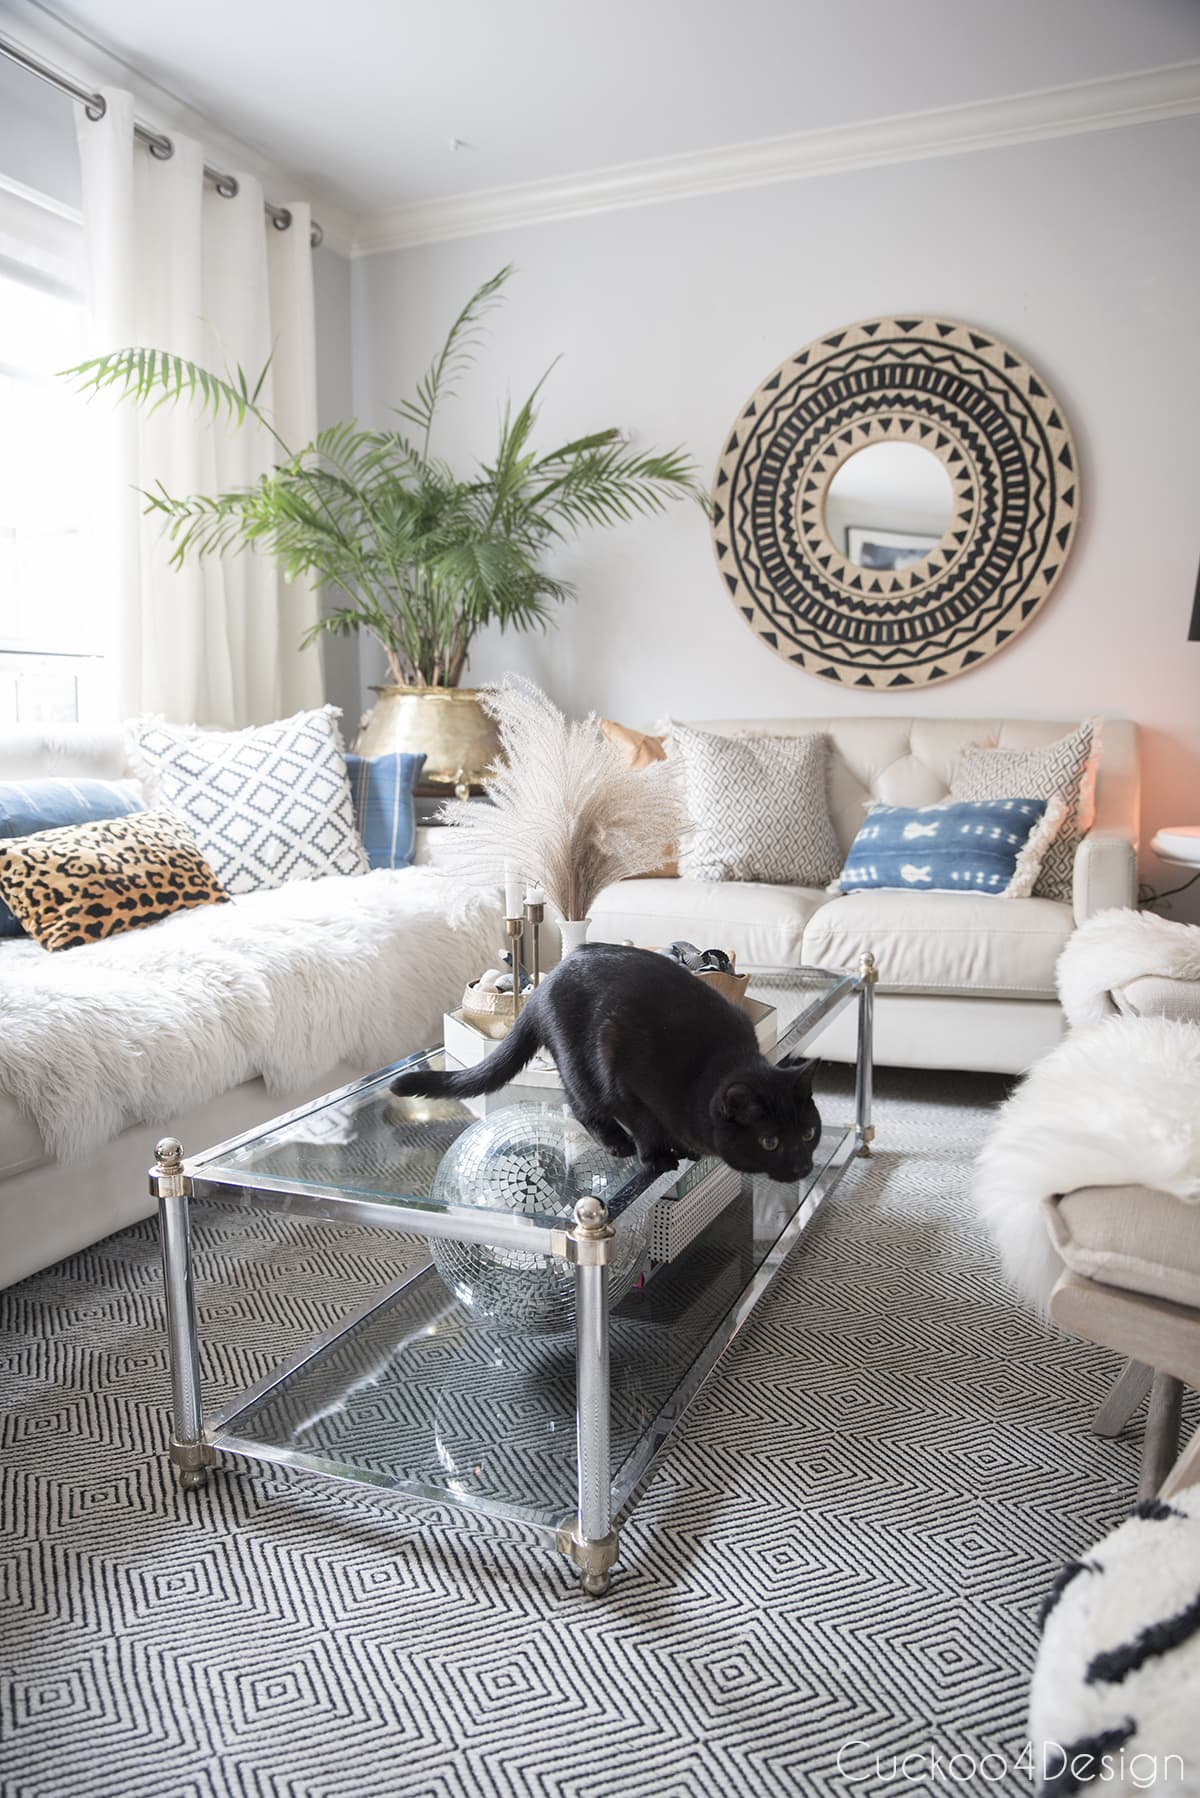 cat jumping on furniture